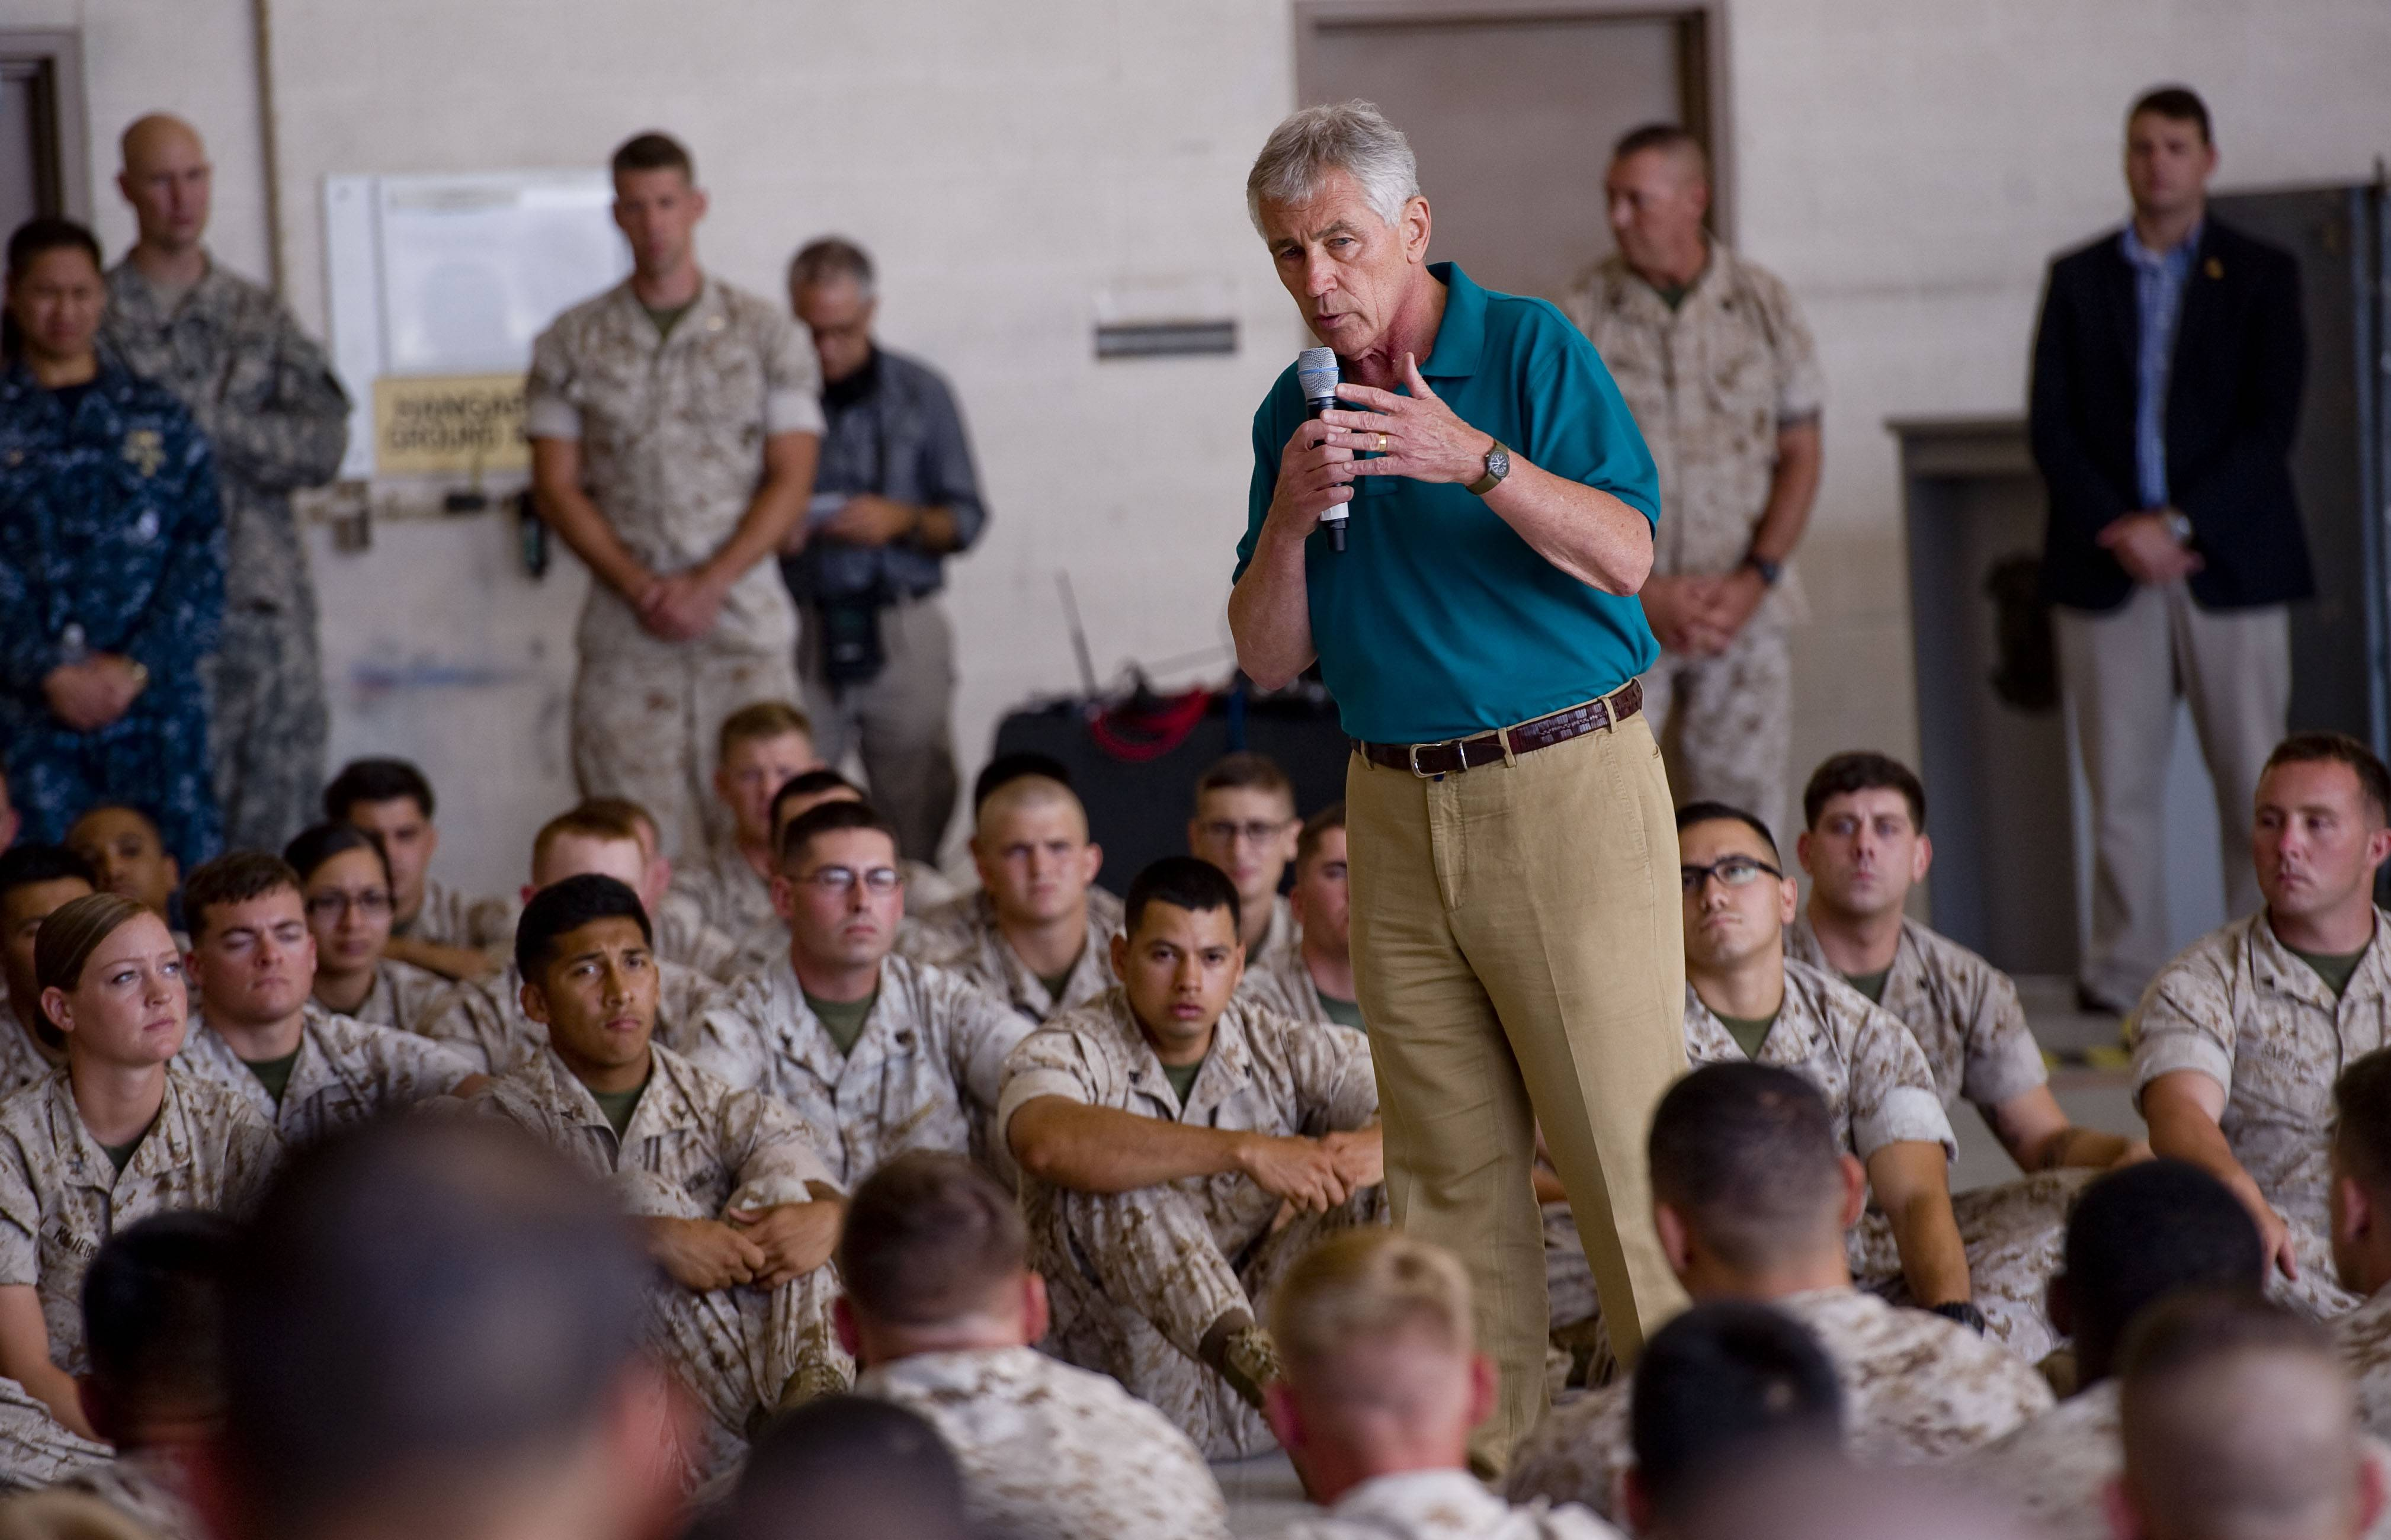 Secretary of Defense Chuck Hagel addresses the Marines assembled in a hangar at Camp Pendleton on Tuesday Aug. 12, 2014.